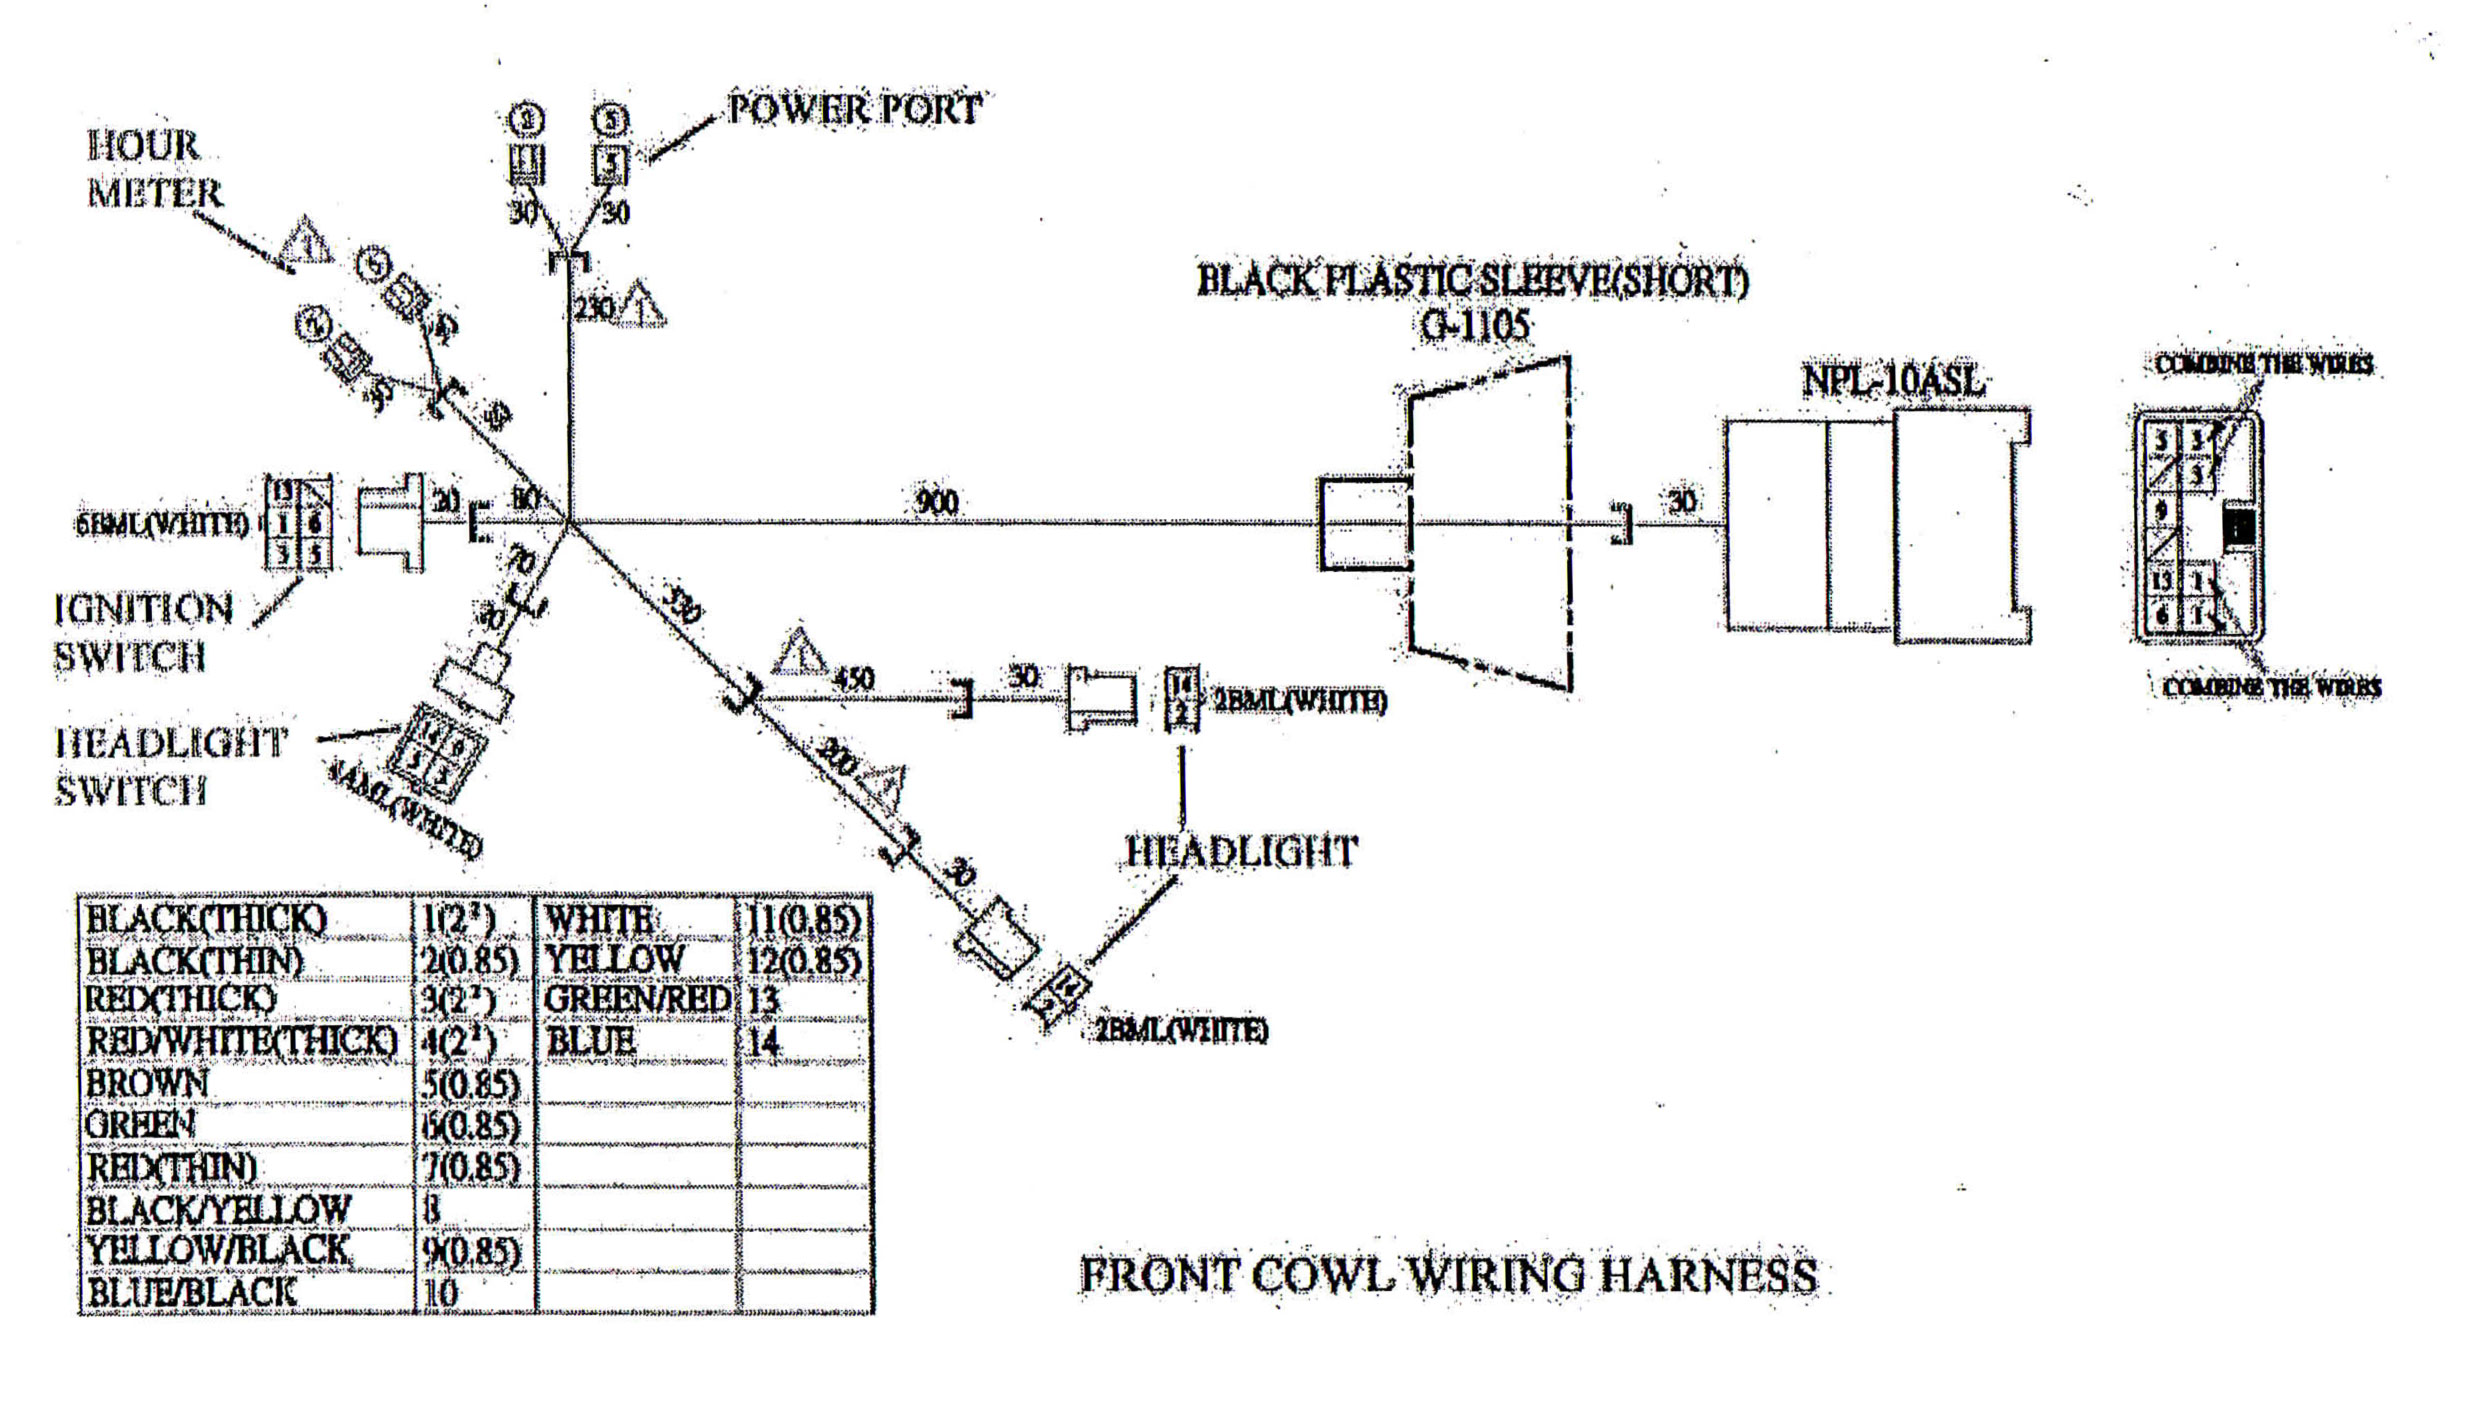 Yerf Dog Wiring Harness - Wiring Diagram Load Yerf Dog Spiderbox Wiring Diagram Box on baja 150 electrical diagram, baja motorsports reaction 150 wiring diagram, gy6 150cc diagram, gy6 150 wiring diagram, howhit 150 wire diagram, gy6 engine diagram, chinese atv parts diagram, 150cc scooter wiring diagram, tomberlin crossfire 150 wiring diagram, 150 cc engine wiring diagram, dog parts diagram,